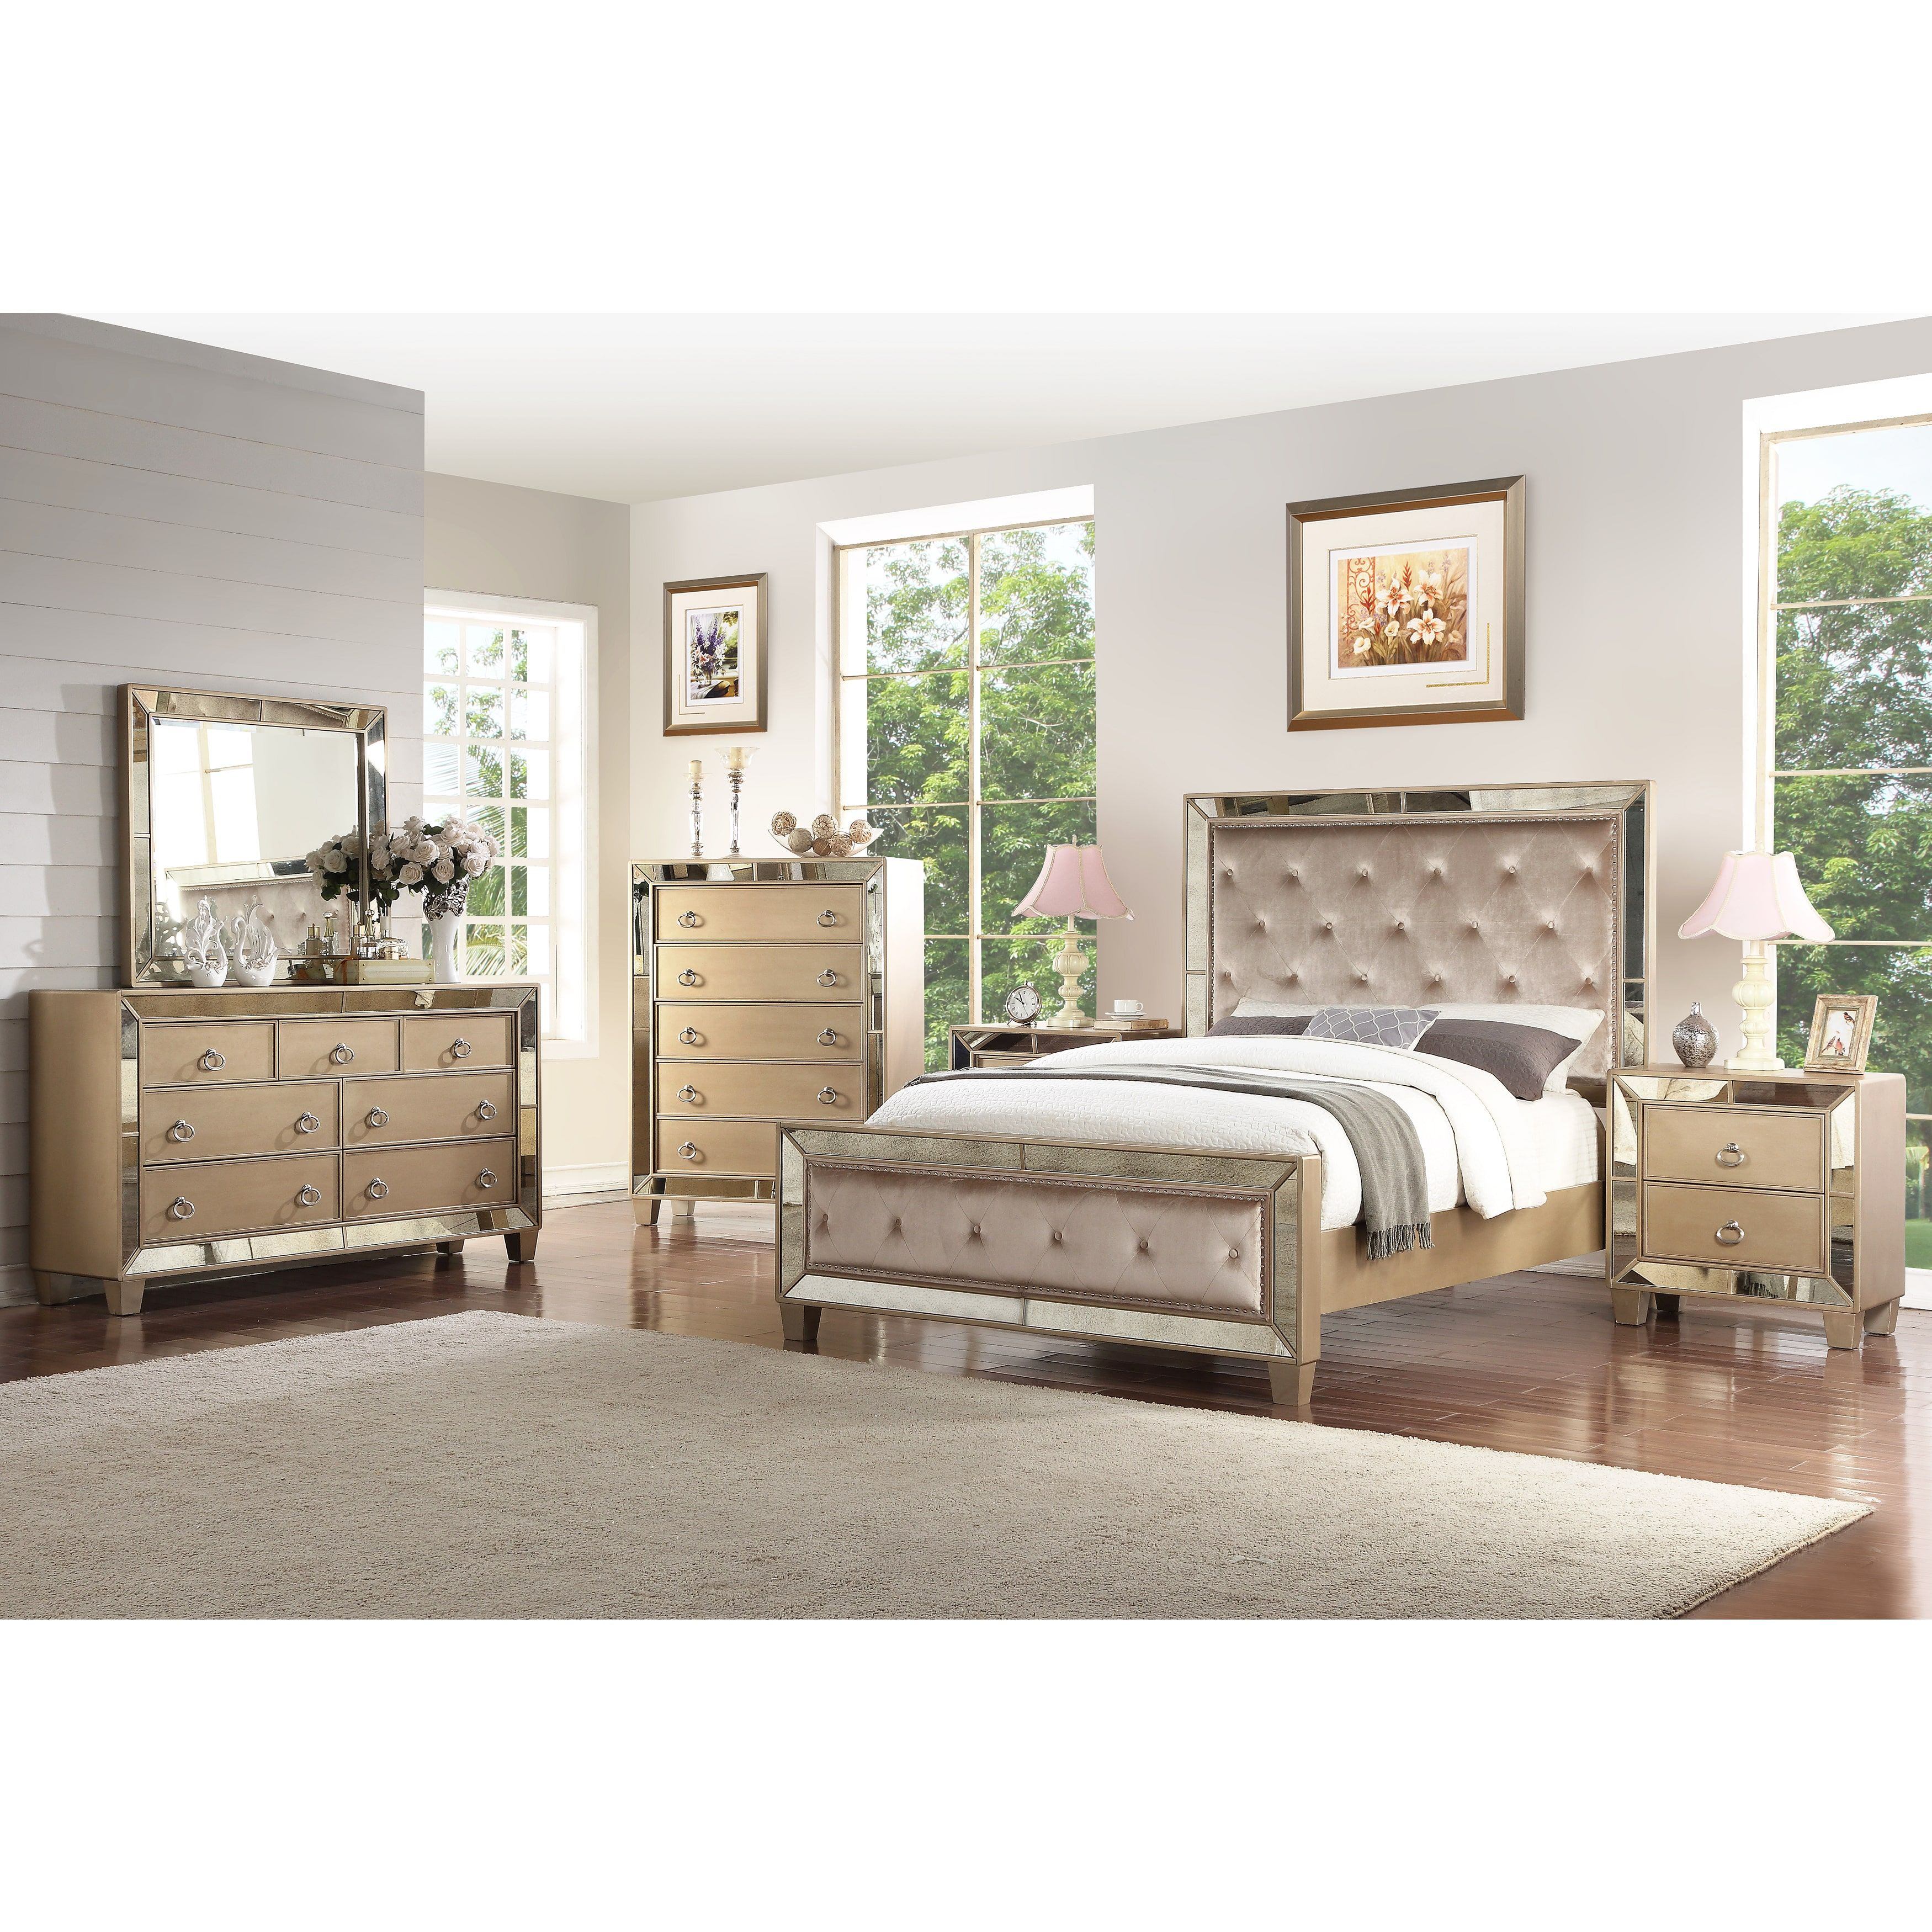 Bedroom Sets : These Complete Furniture Collections Include Everything You  Need To Outfit The Entire Bedroom